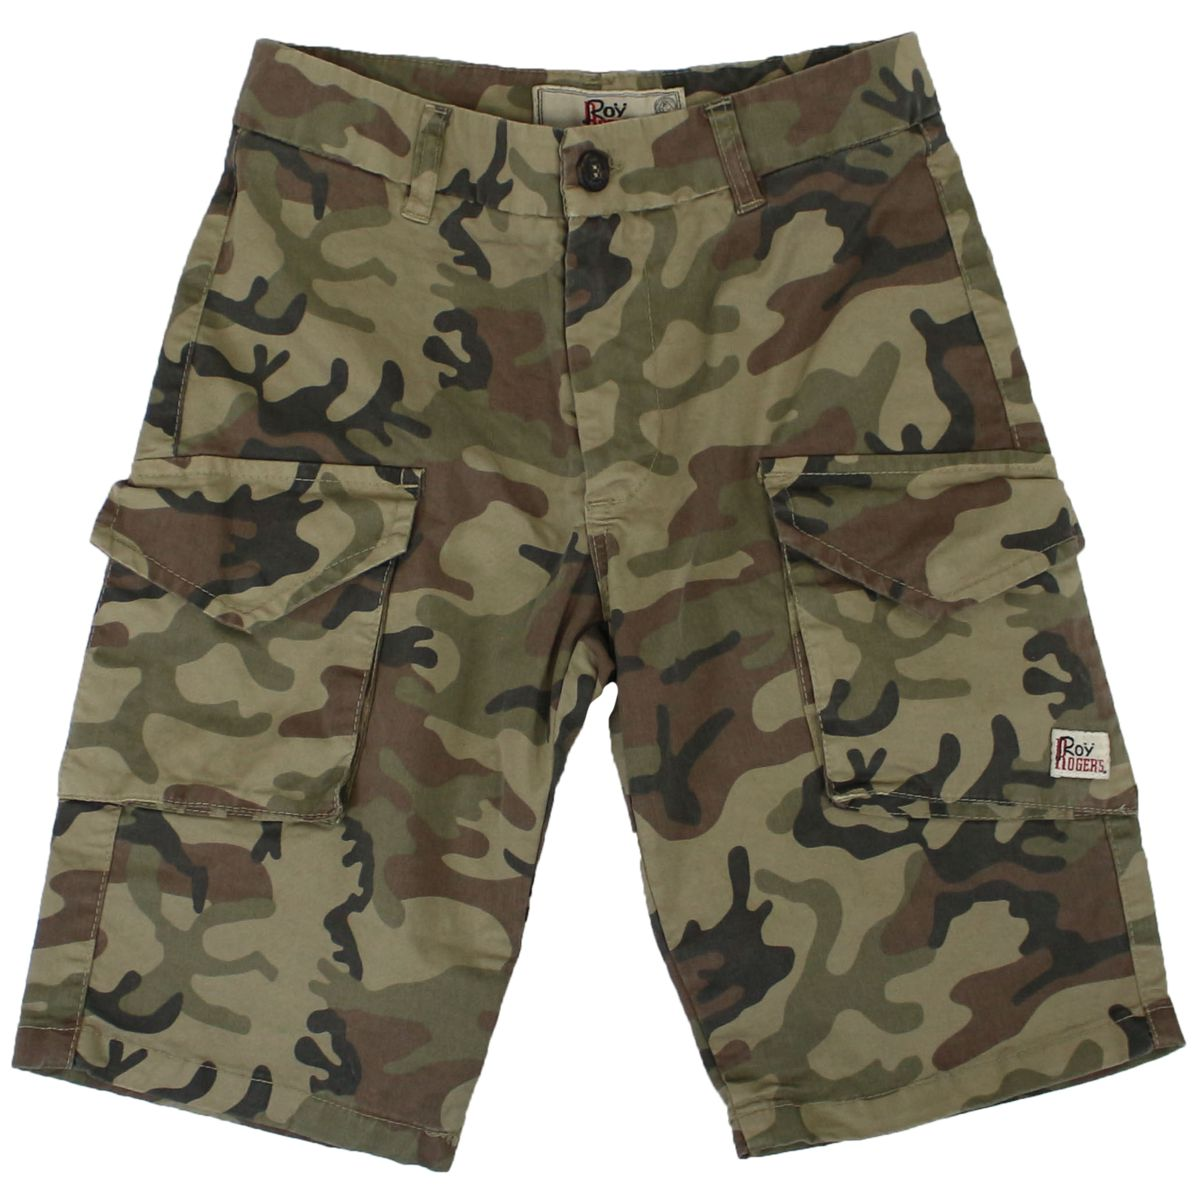 Cotton short with camouflage print Yellow ROY ROGER'S